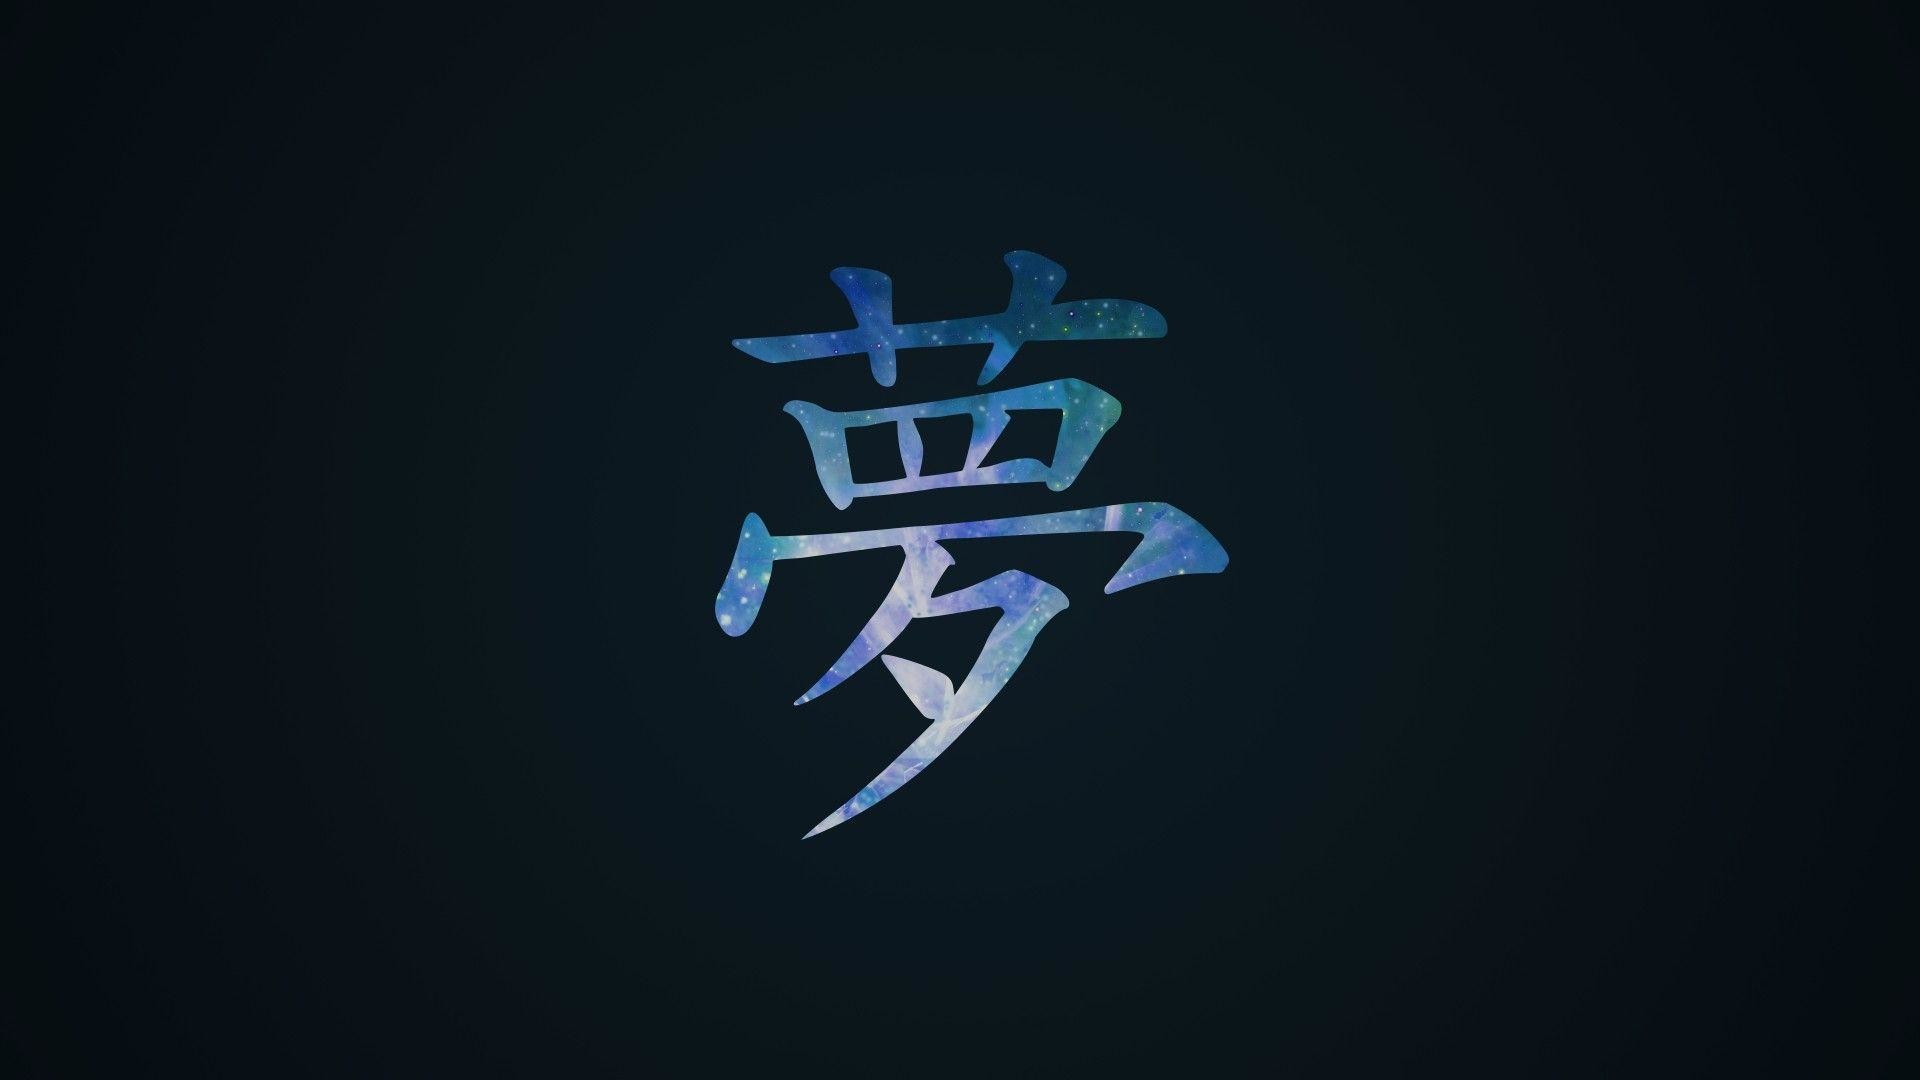 Chinese Symbol Wallpaper 65 Images